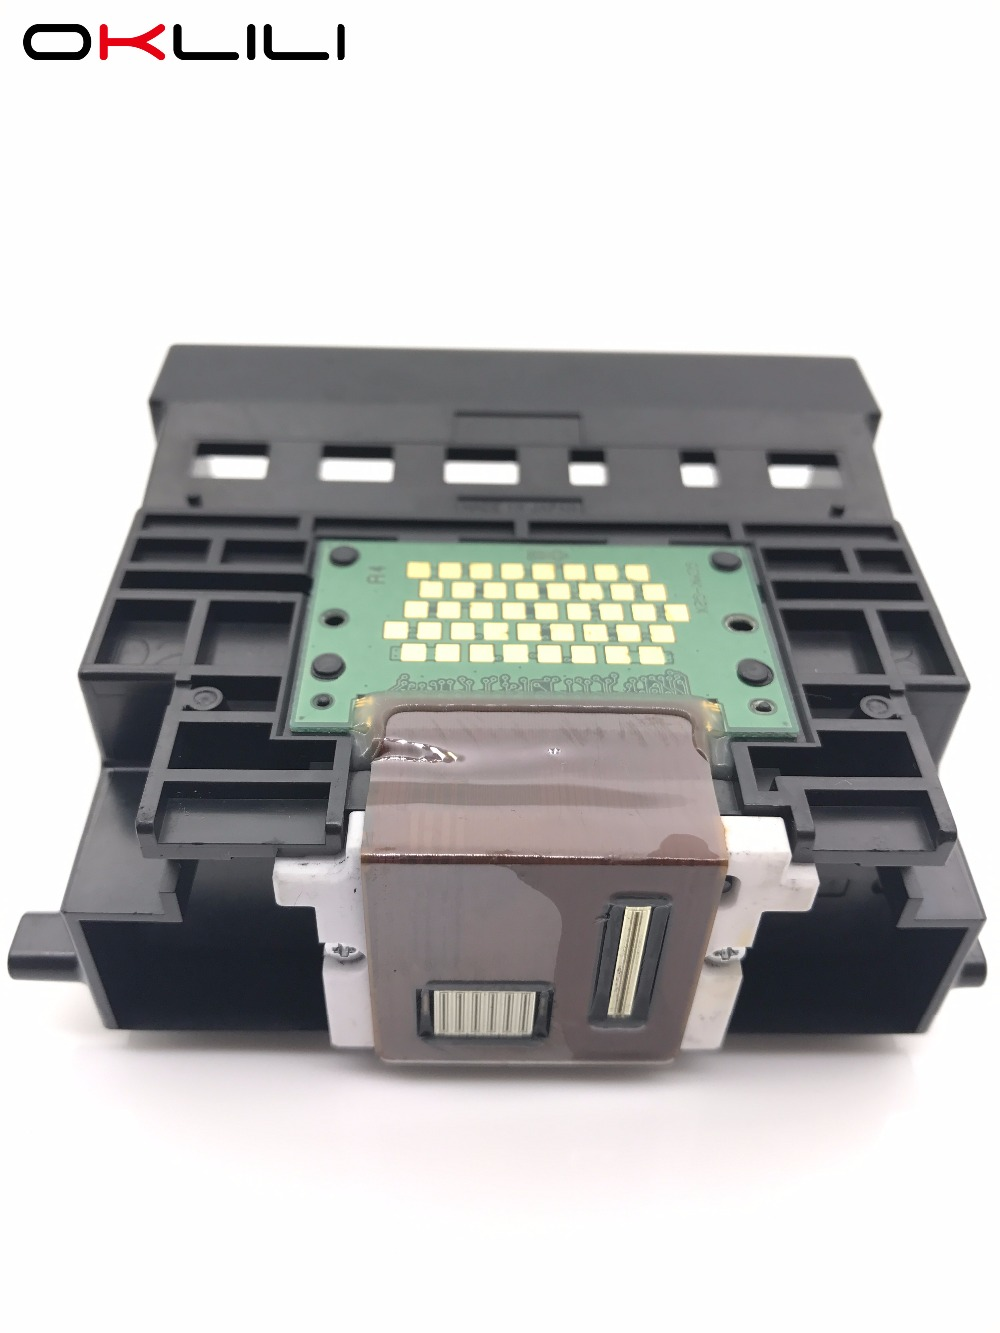 OKLILI QY6-0049 Printhead Print Head Printer Head for Canon 860i 865 i860 i865 MP770 MP790 iP4000 iP4100 MP750 MP760 MP780 odeon light бра odeon light zafran 2837 1w